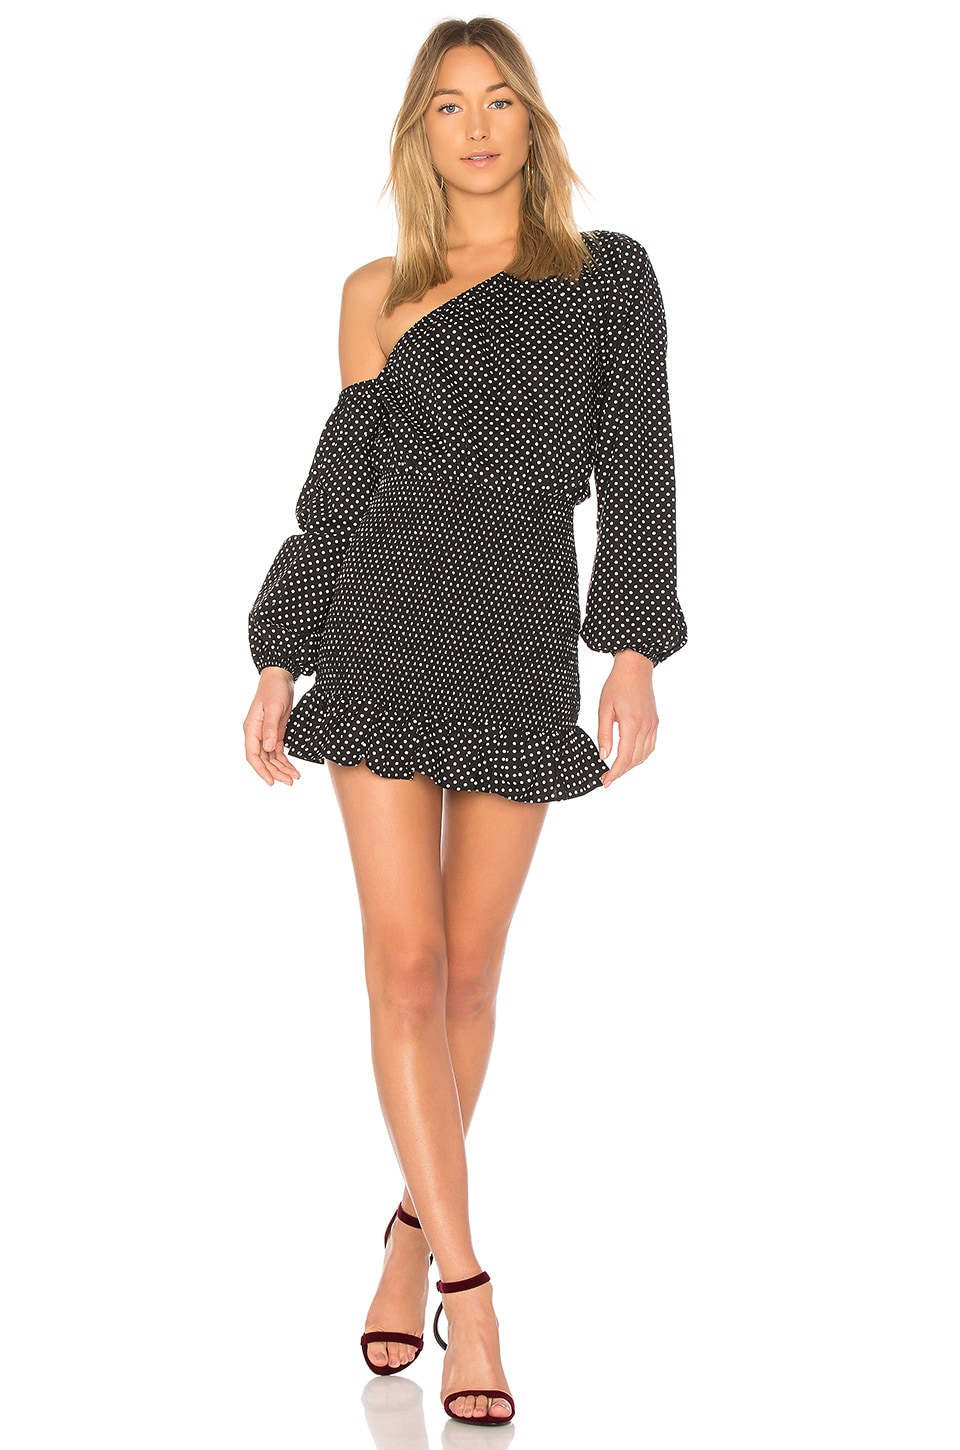 Tularosa Cynthia Dress in Black Polka Dot